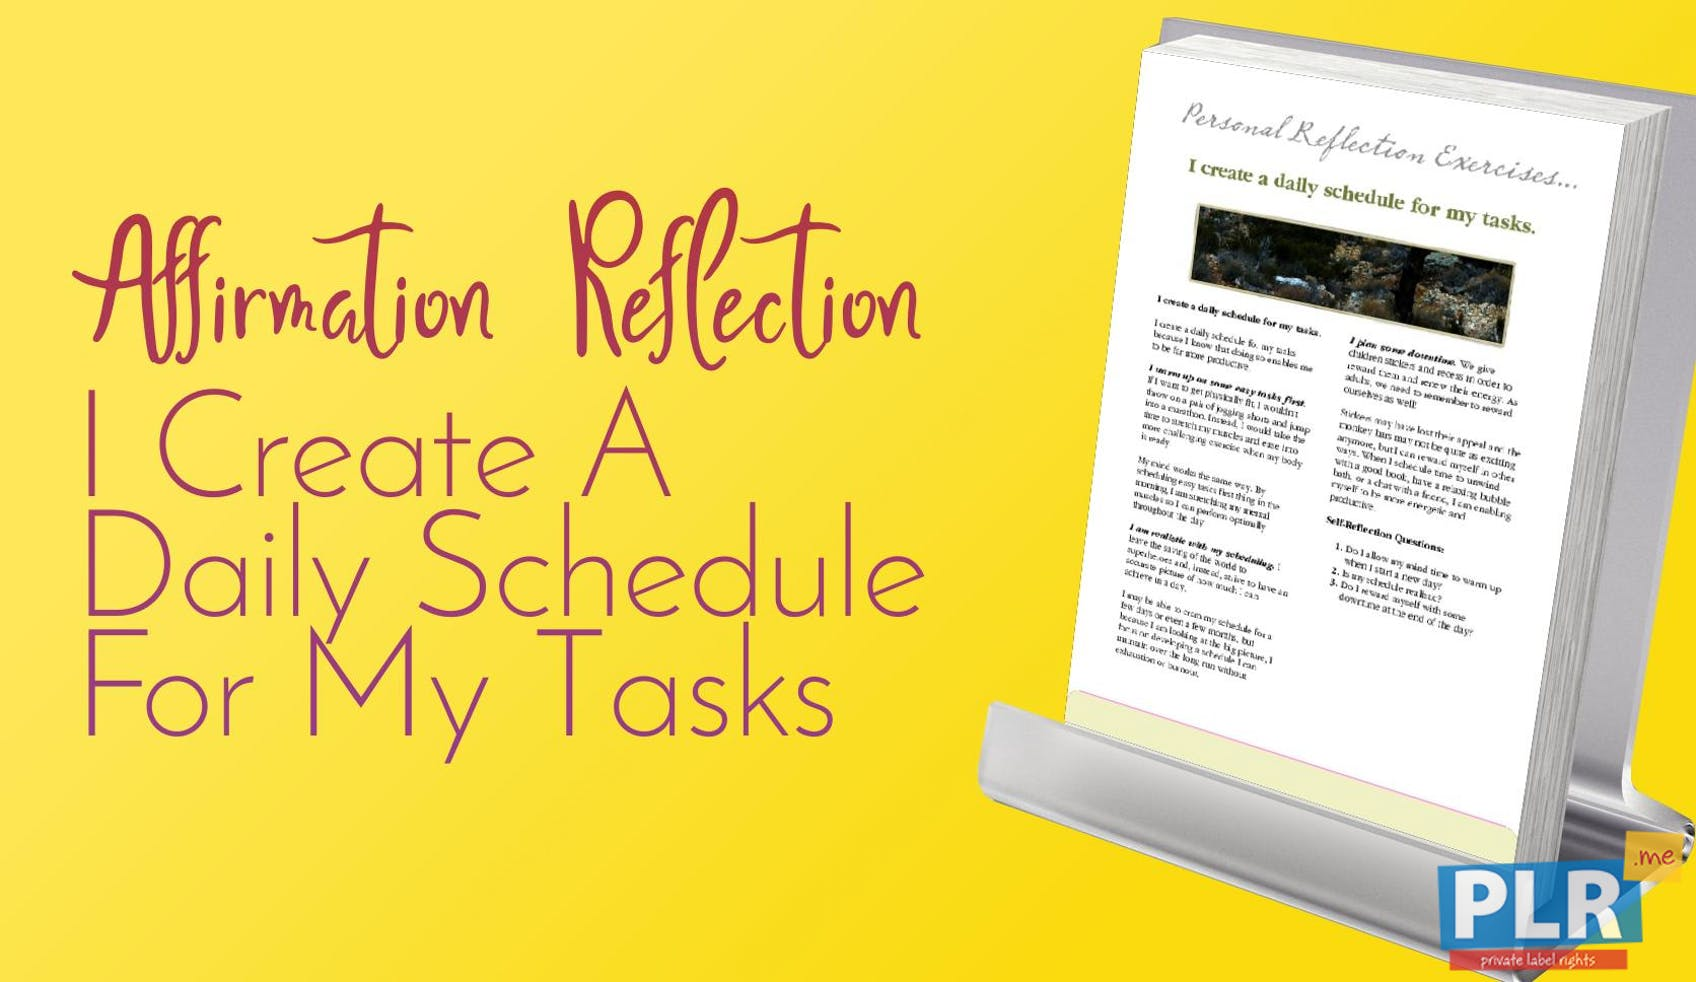 I Create A Daily Schedule For My Tasks